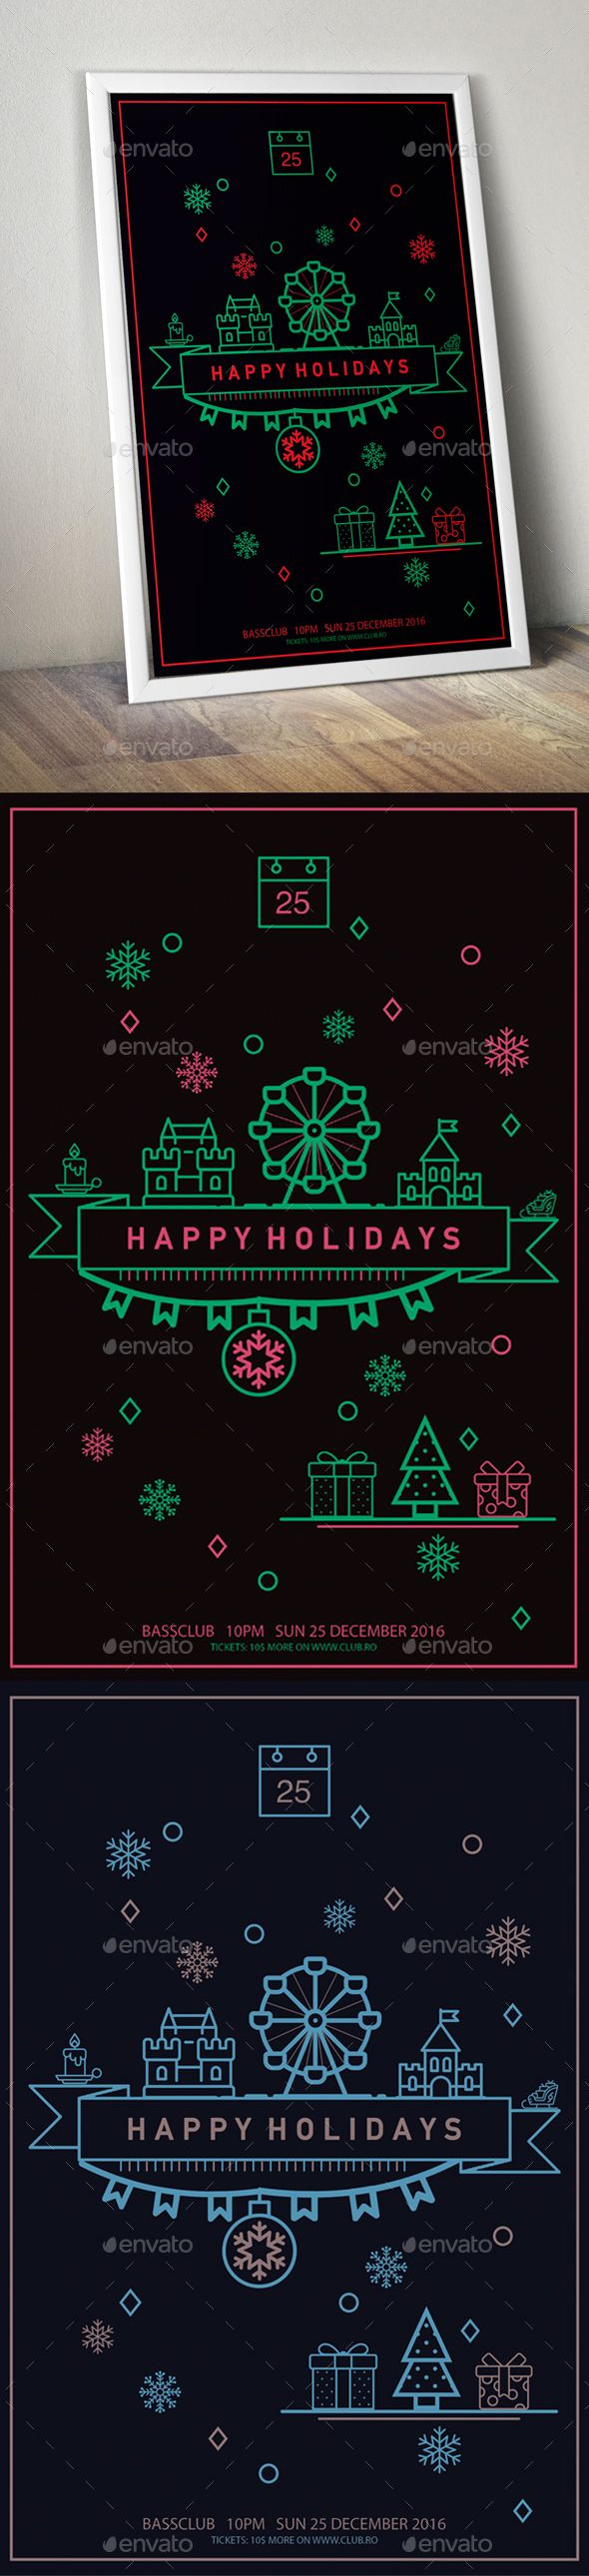 #Happy #Holidays #Poster - #Events #Flyers Download here: https://graphicriver.net/item/happy-holidays-poster/19059346?ref=alena994